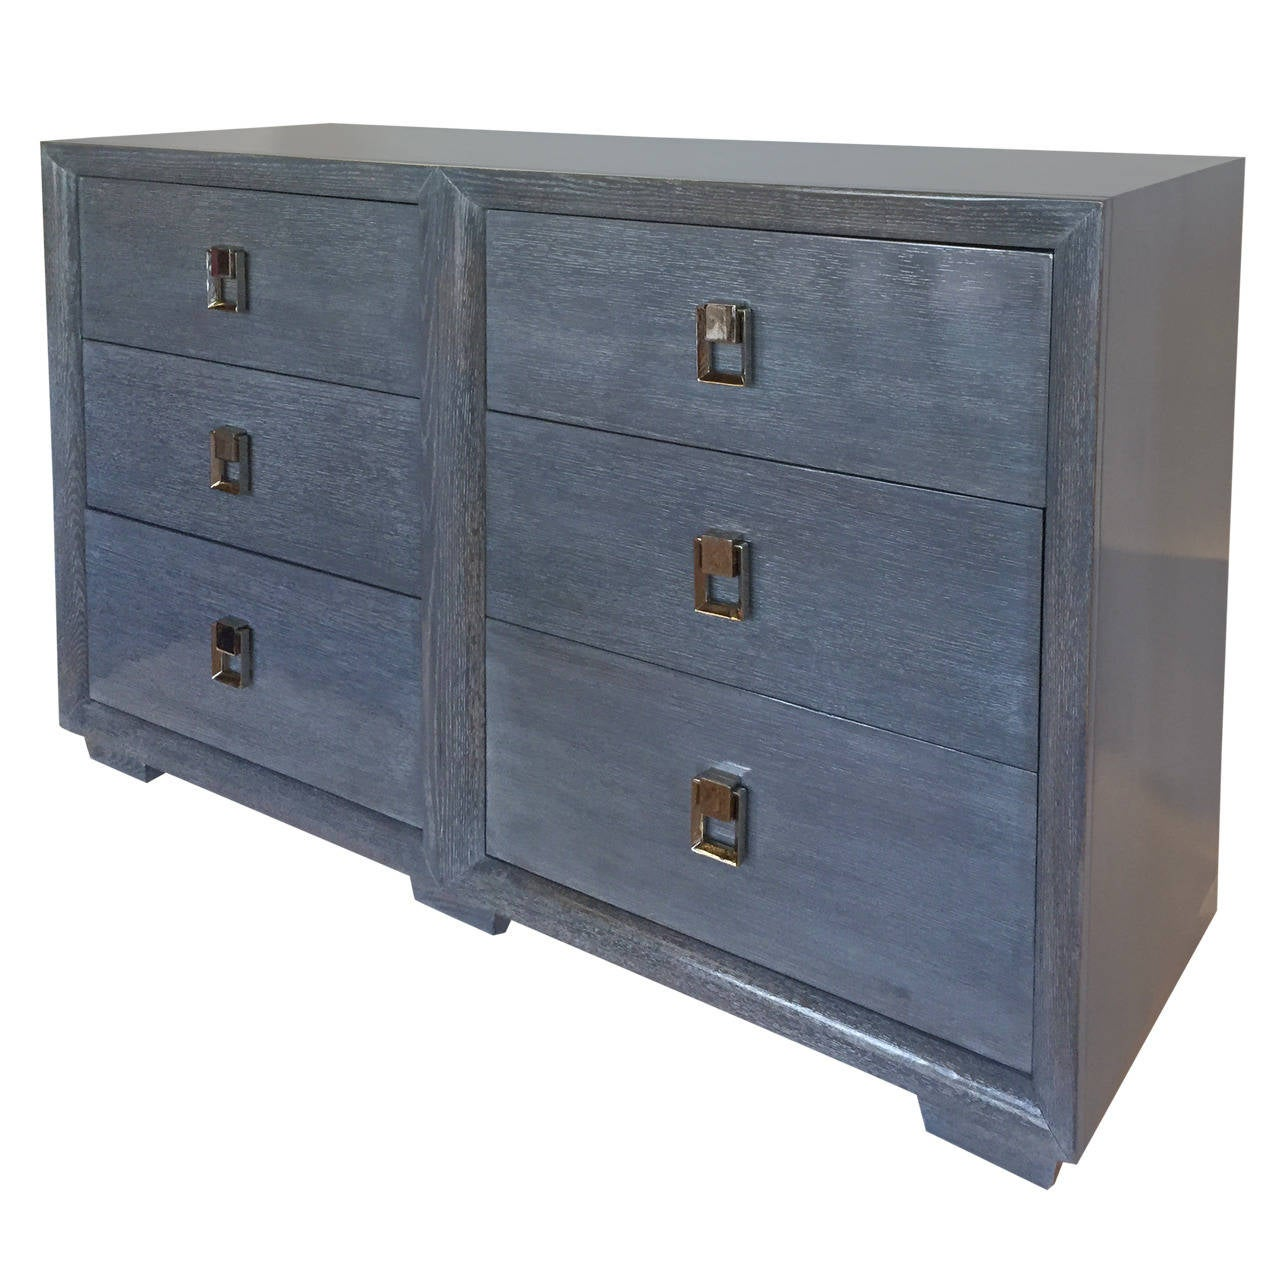 1940s elegant double commode or chest of drawers at 1stdibs. Black Bedroom Furniture Sets. Home Design Ideas